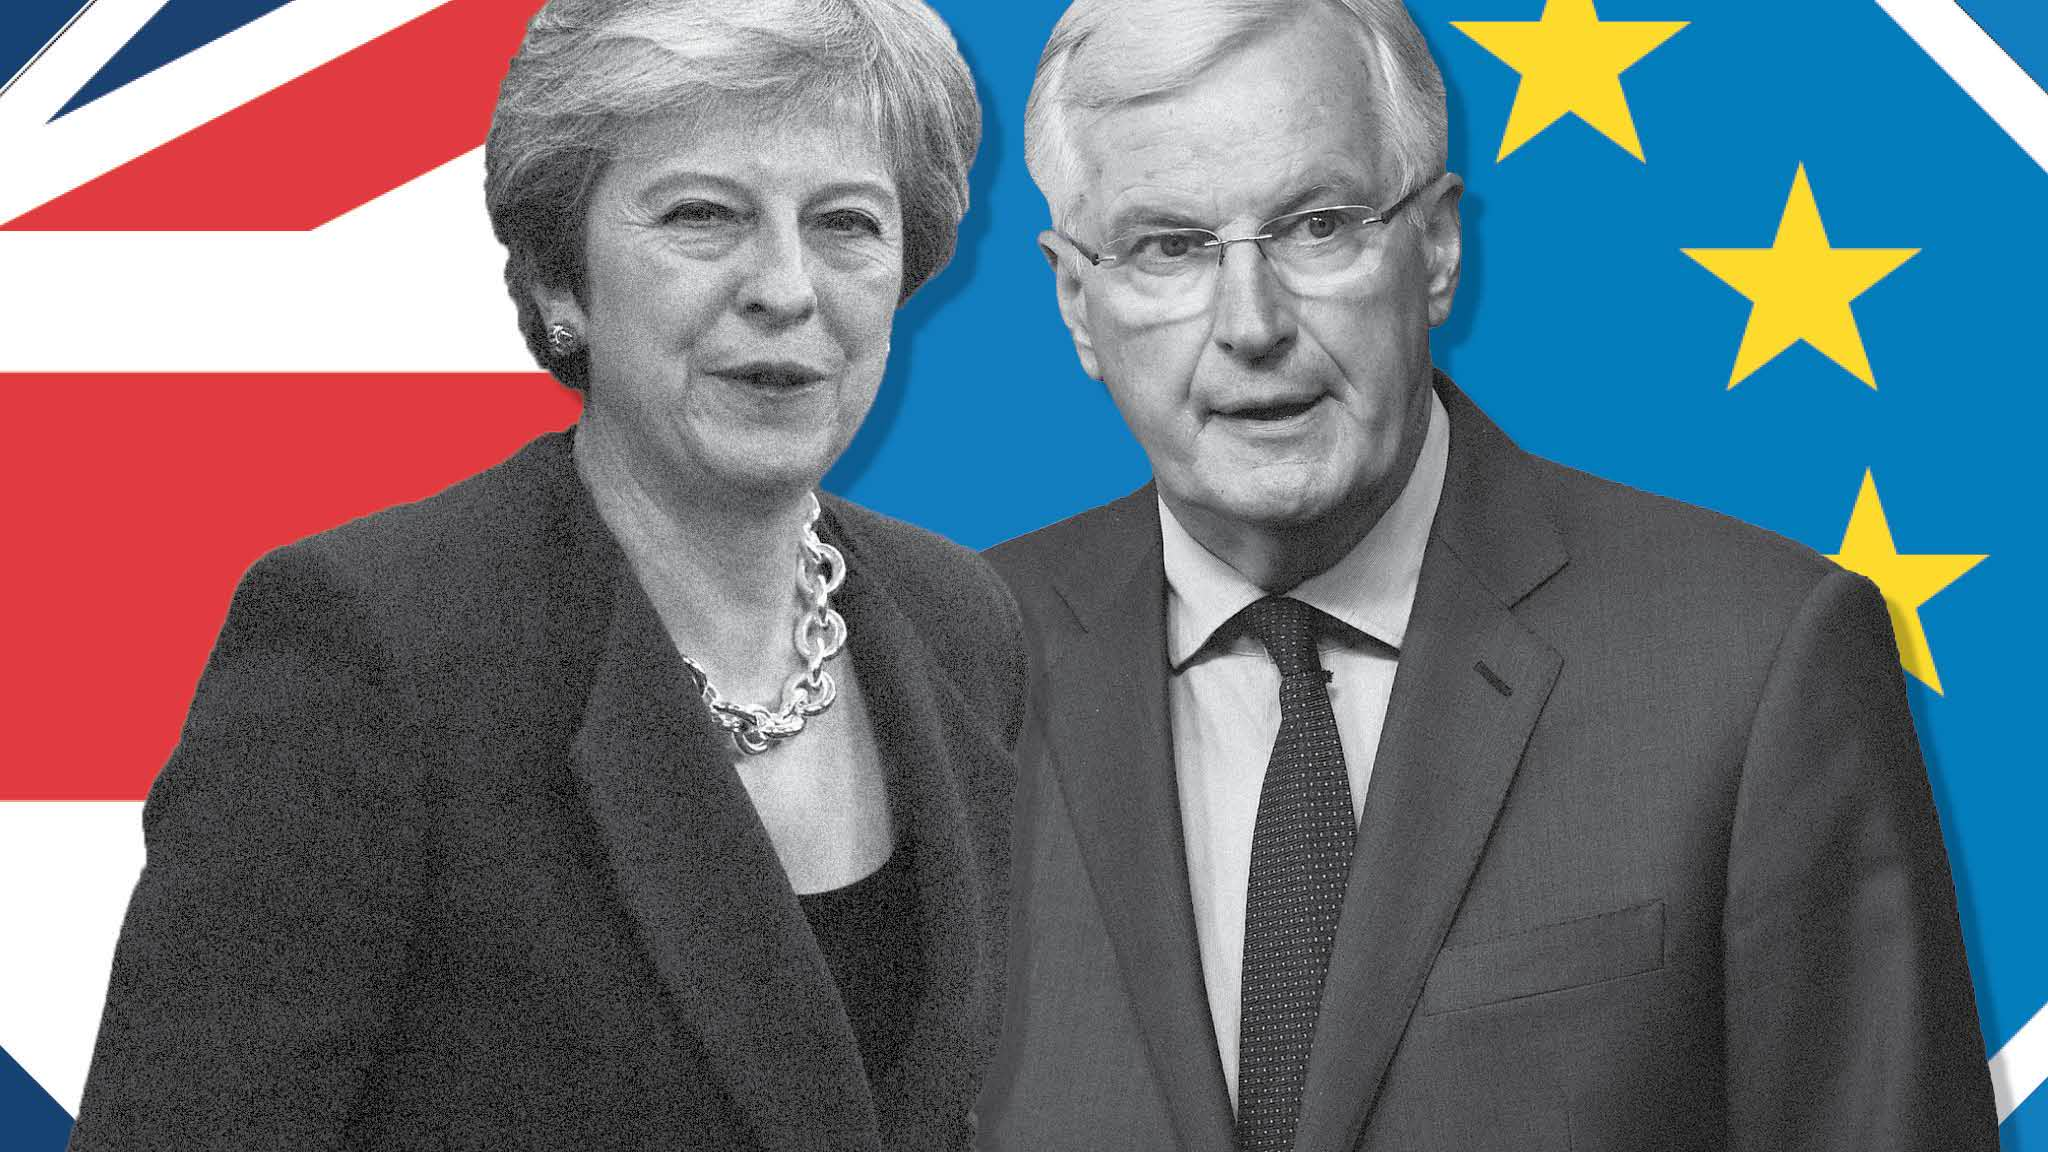 May's Brexit compromise comes with high price